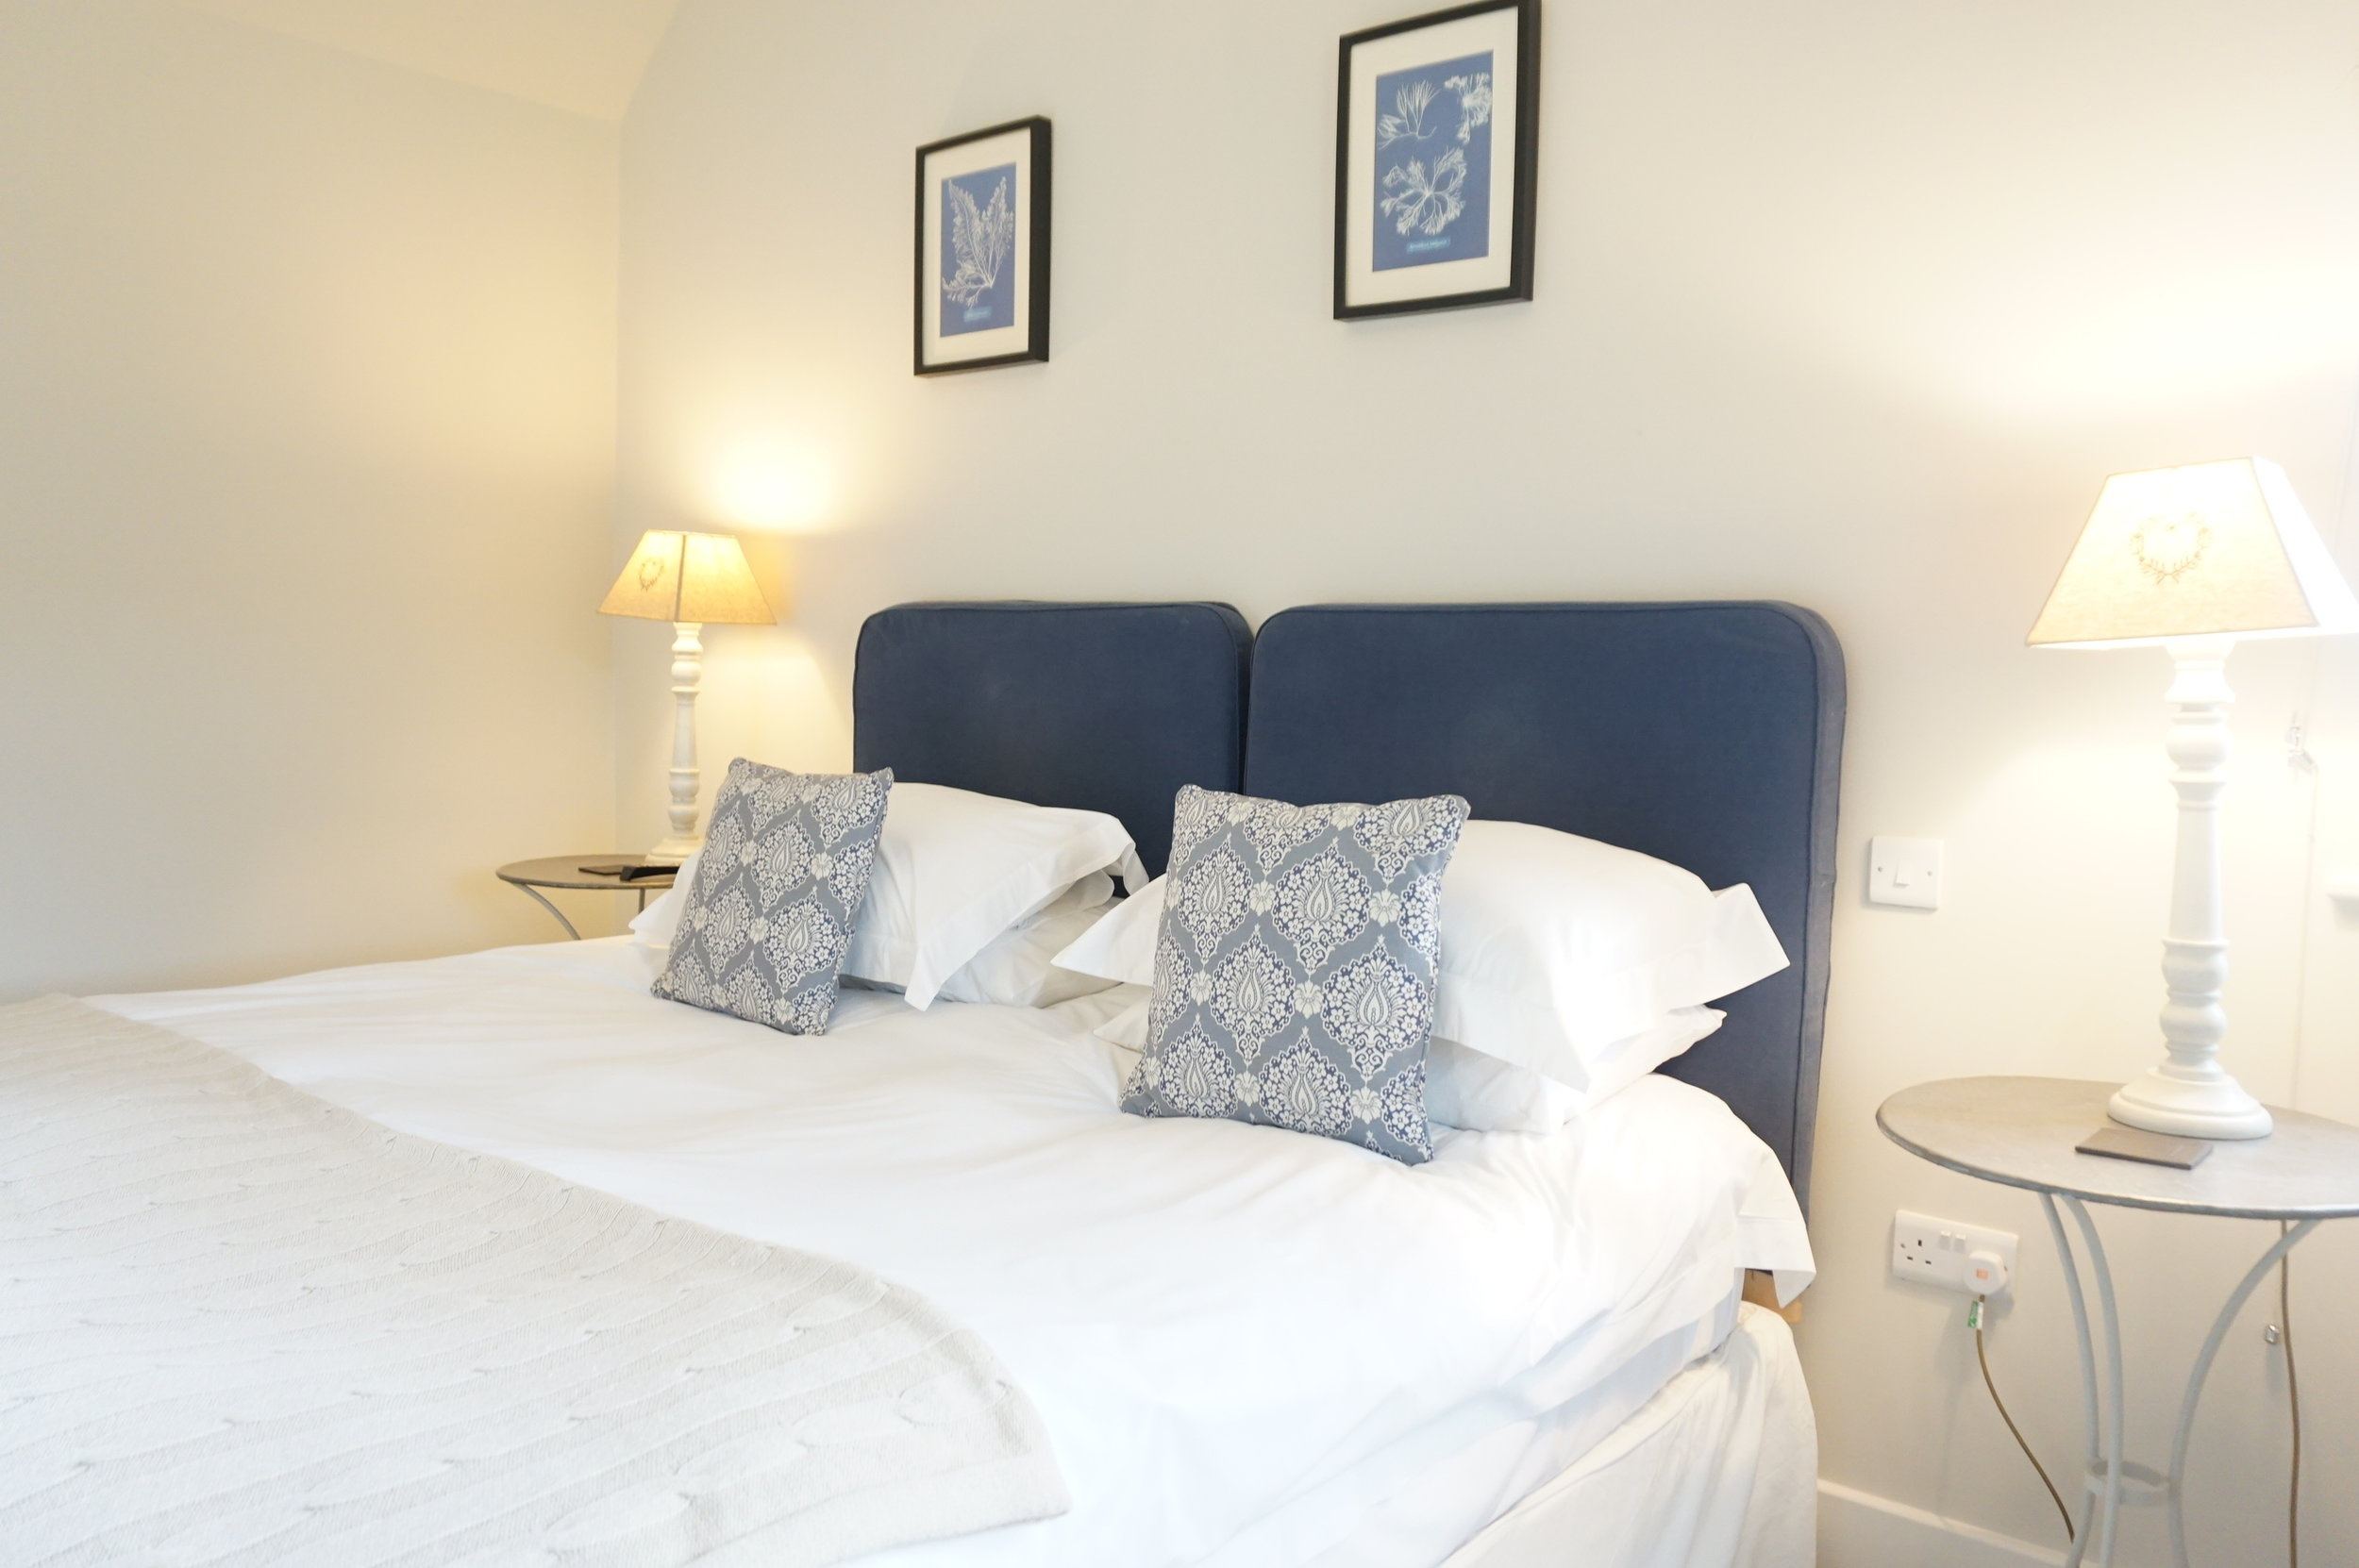 Room 1 - A gorgeous room with direct views of the South Downs National Park. Can be booked as a double or as a twin room. This rooms has its own private entrance and a private bathroom with a bath to maximize relaxation. The perfect choice for a couple, or a single traveller.